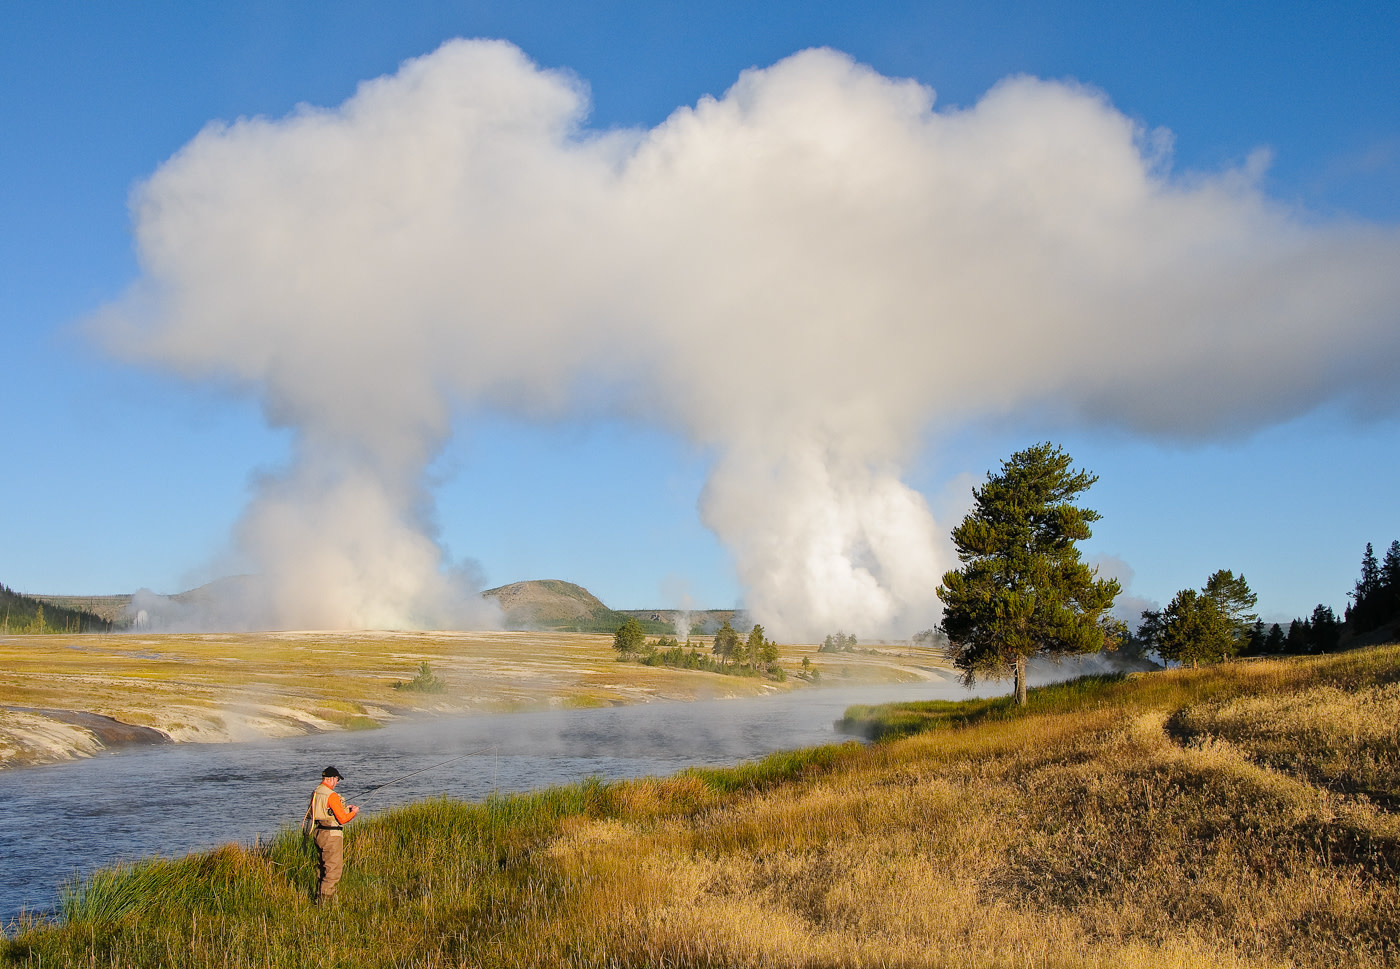 John Juracek Photos - Firehole River Geysers